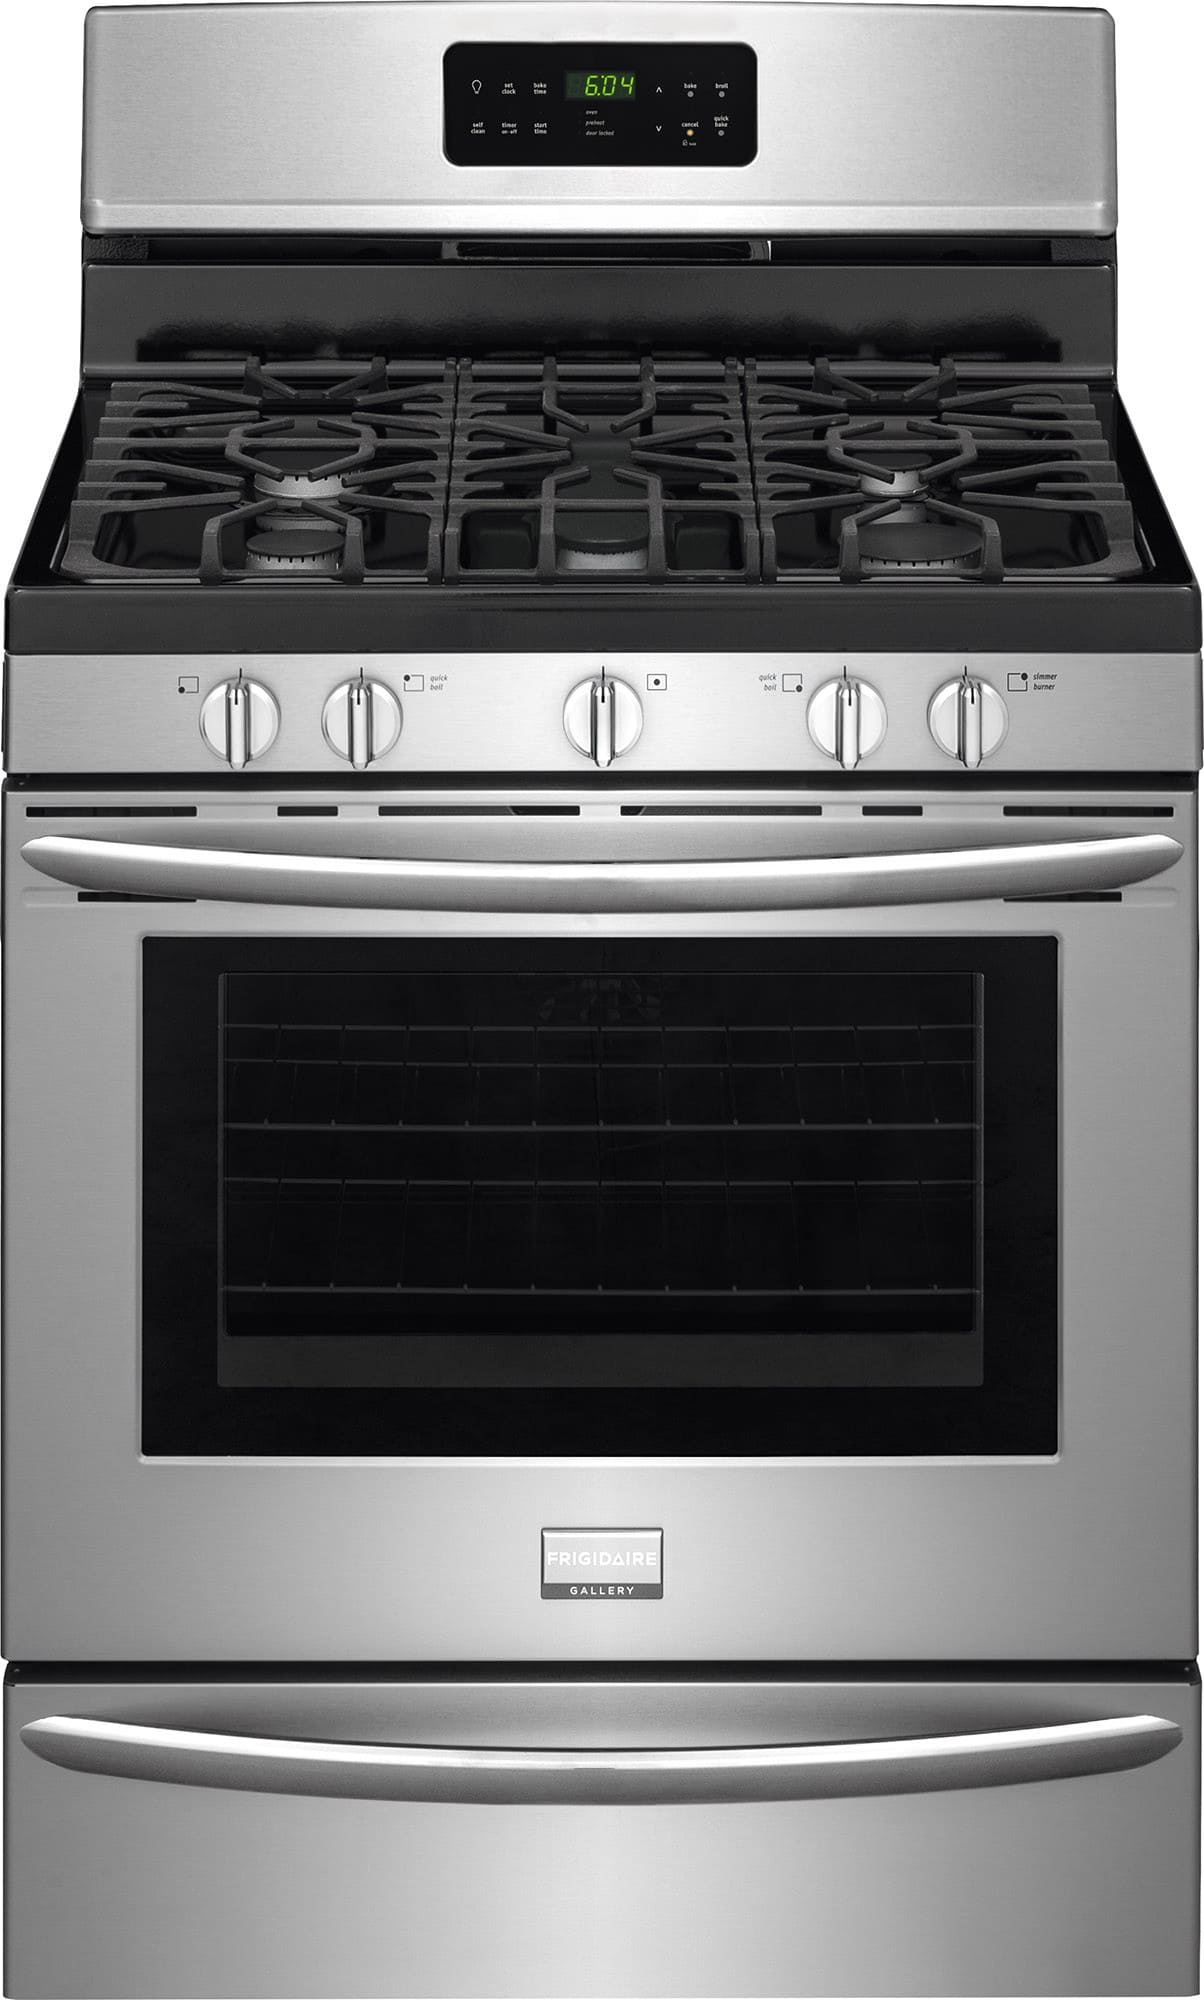 bosch induction cooktop instructions